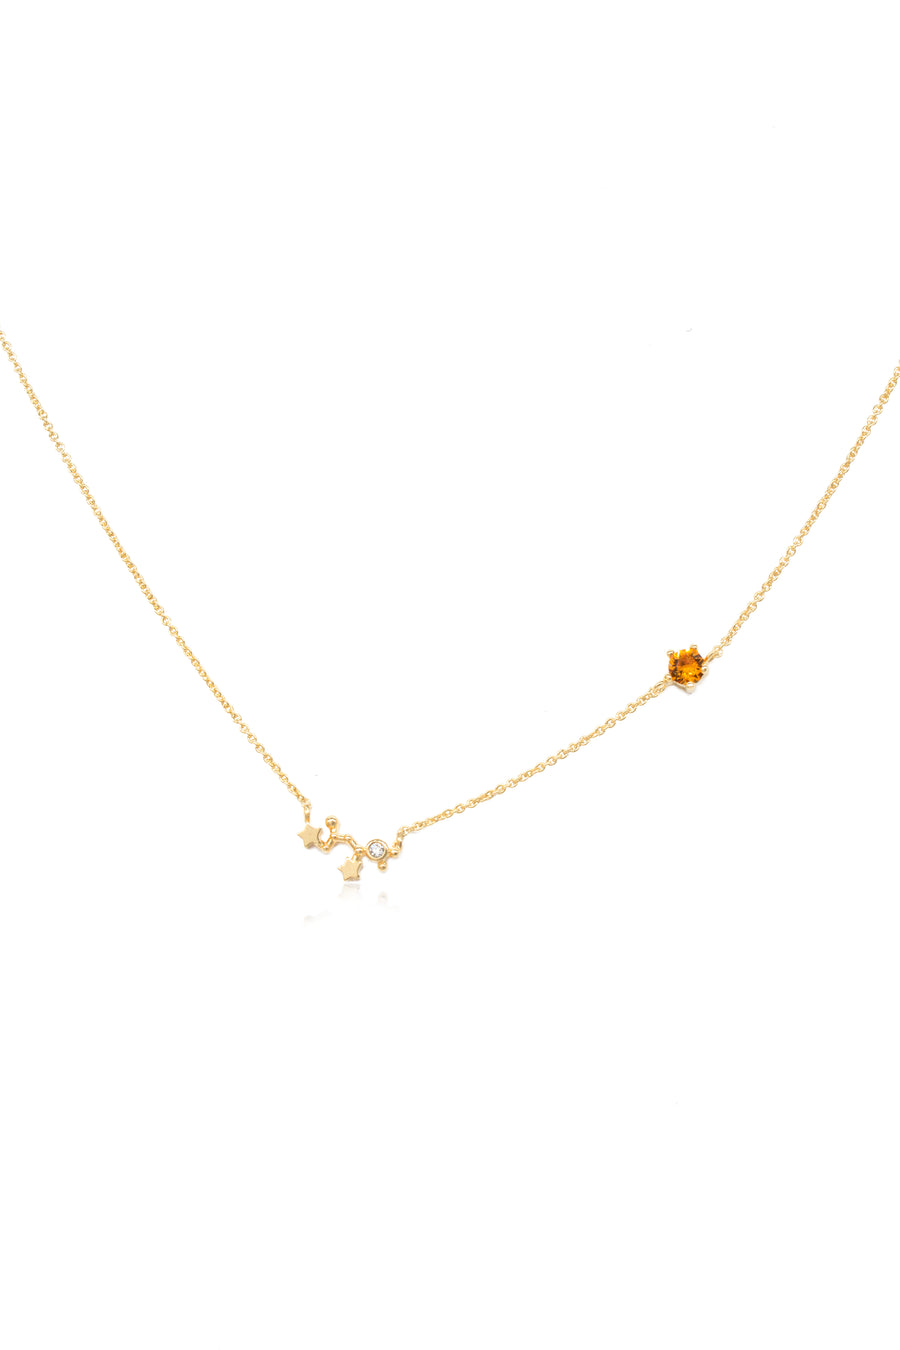 ZODIAC Necklace - All Star Signs